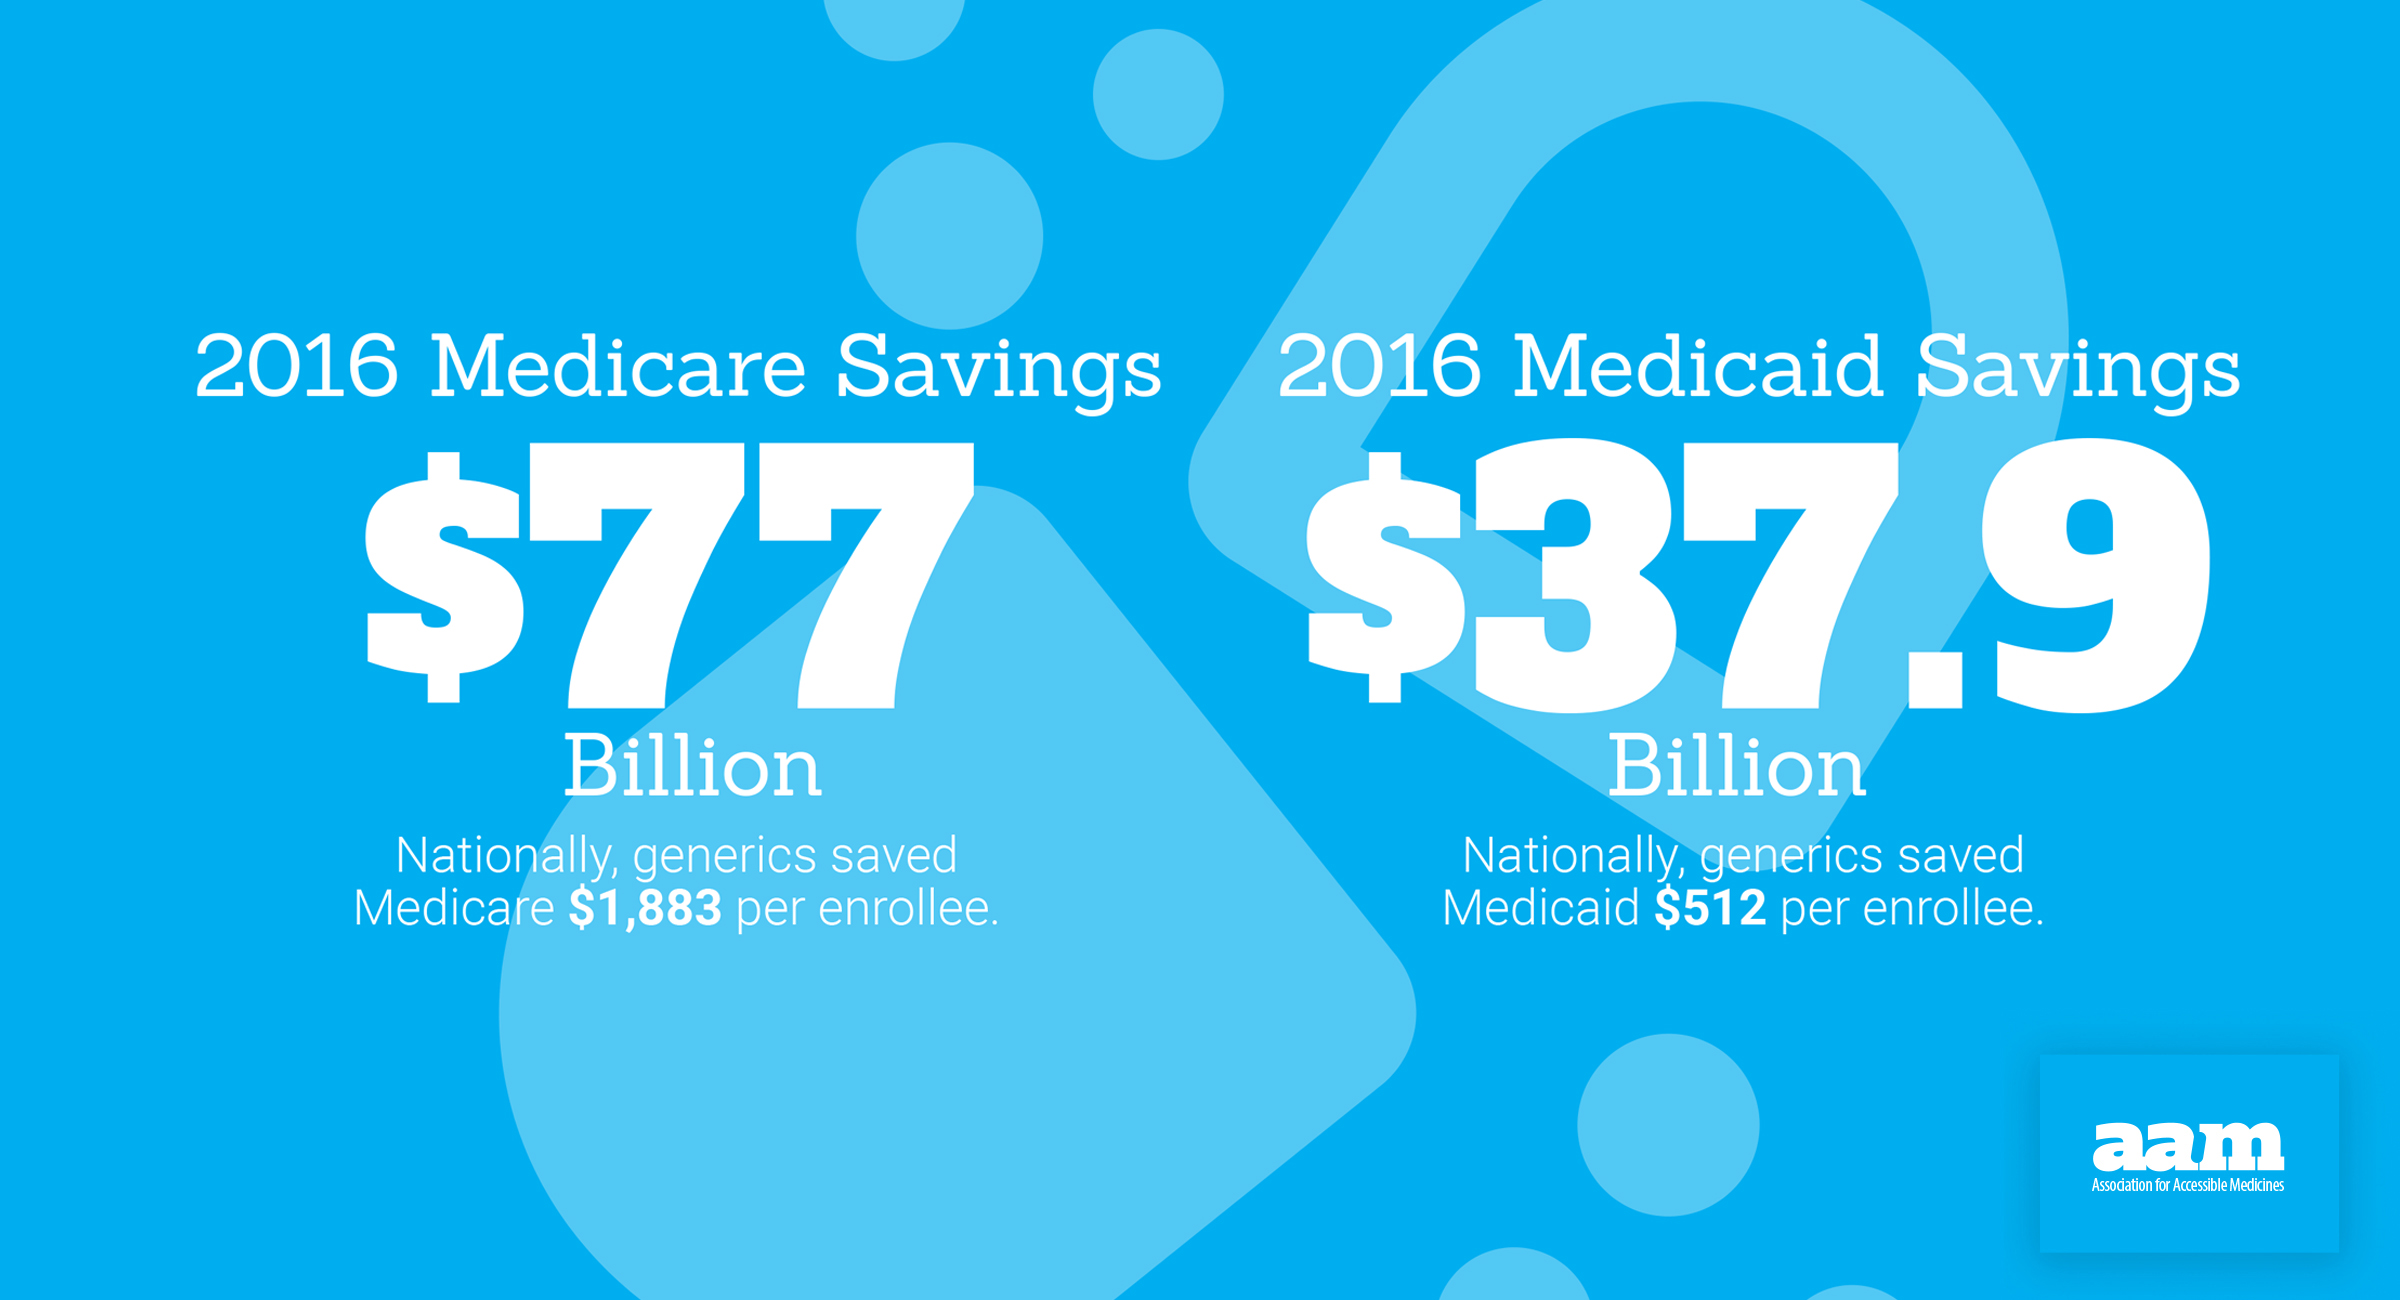 Generic Drug Access & Savings Report - Medicare and Medicaid